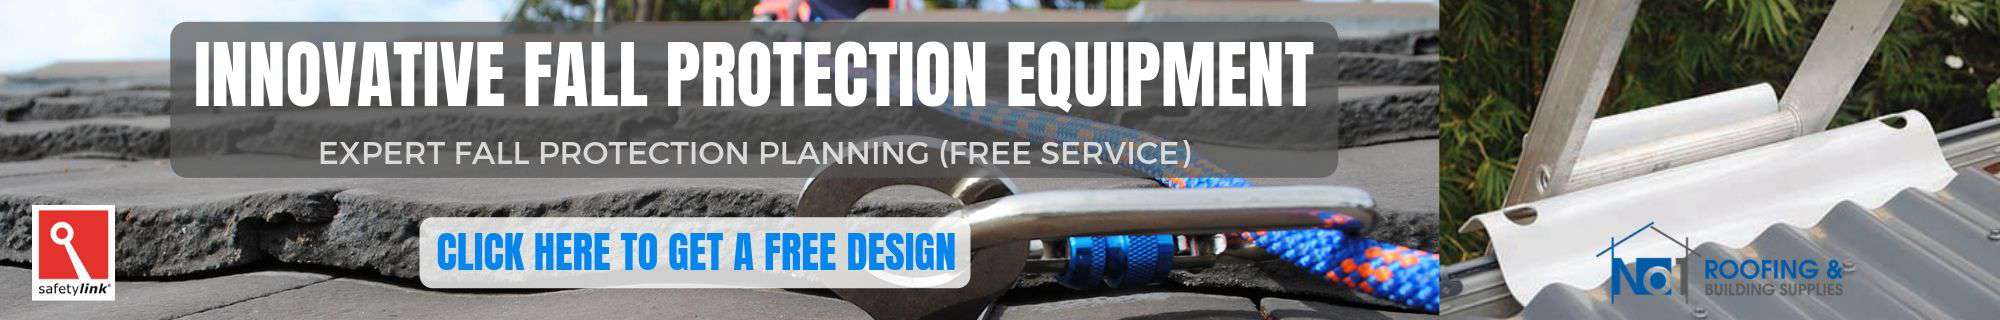 FREE DESIGN AND PLANNING SERVICE - FALL PROTECTION EQUIPMENT